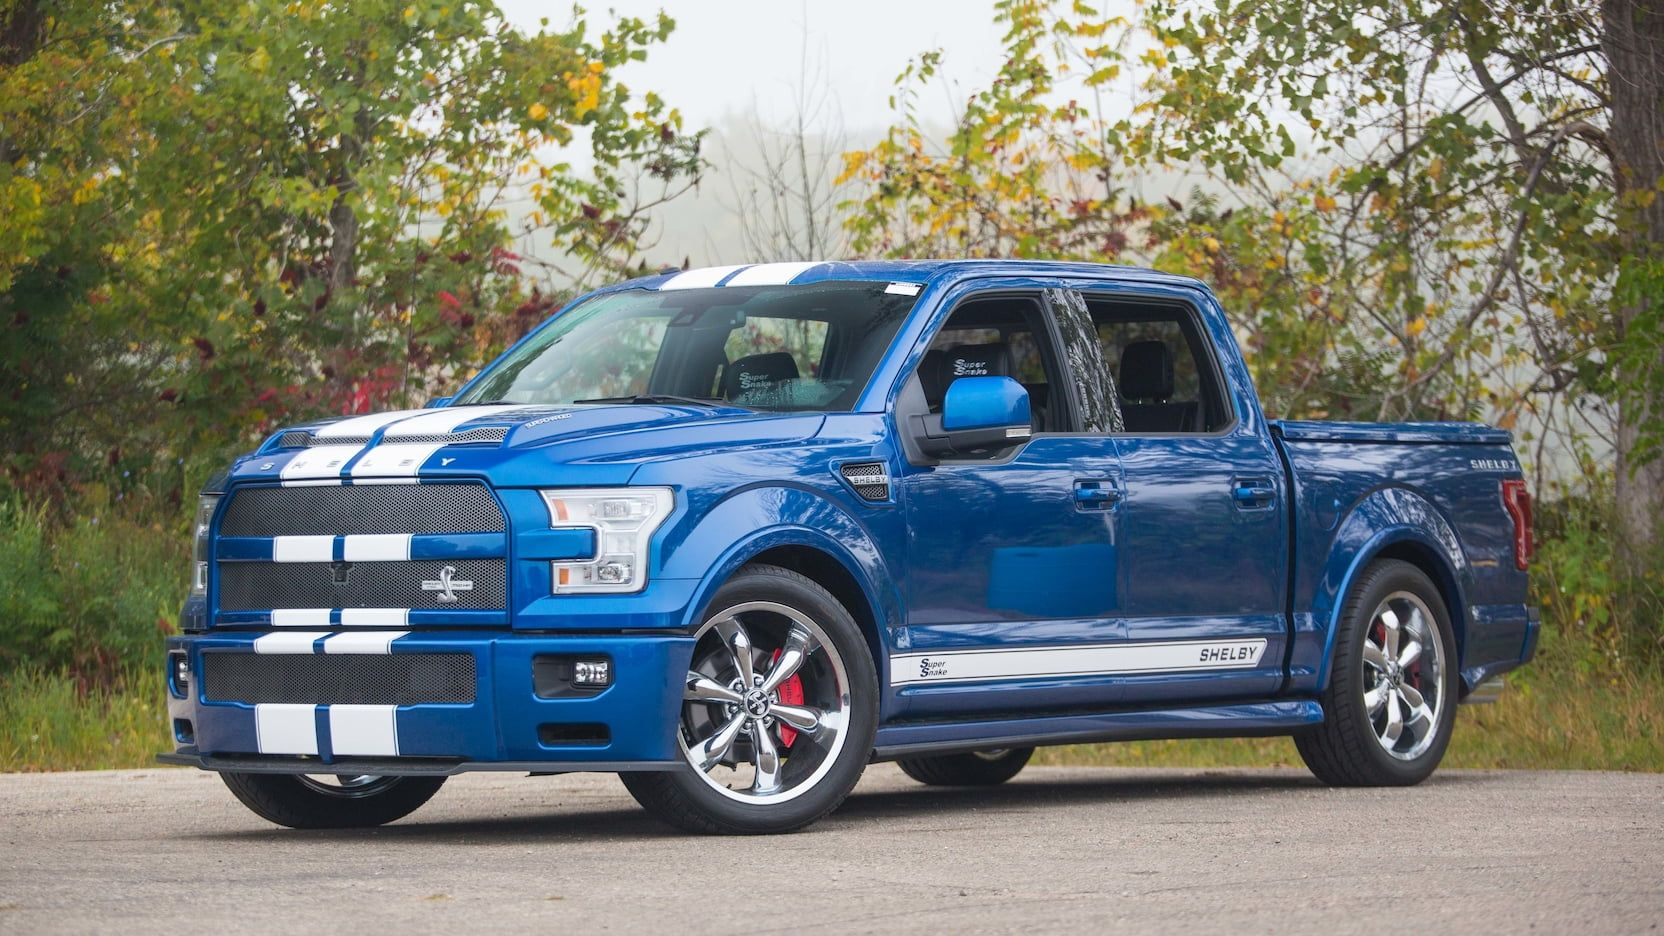 2017 ford f150 shelby super snake pickup presented as lot s97 at schaumburg il